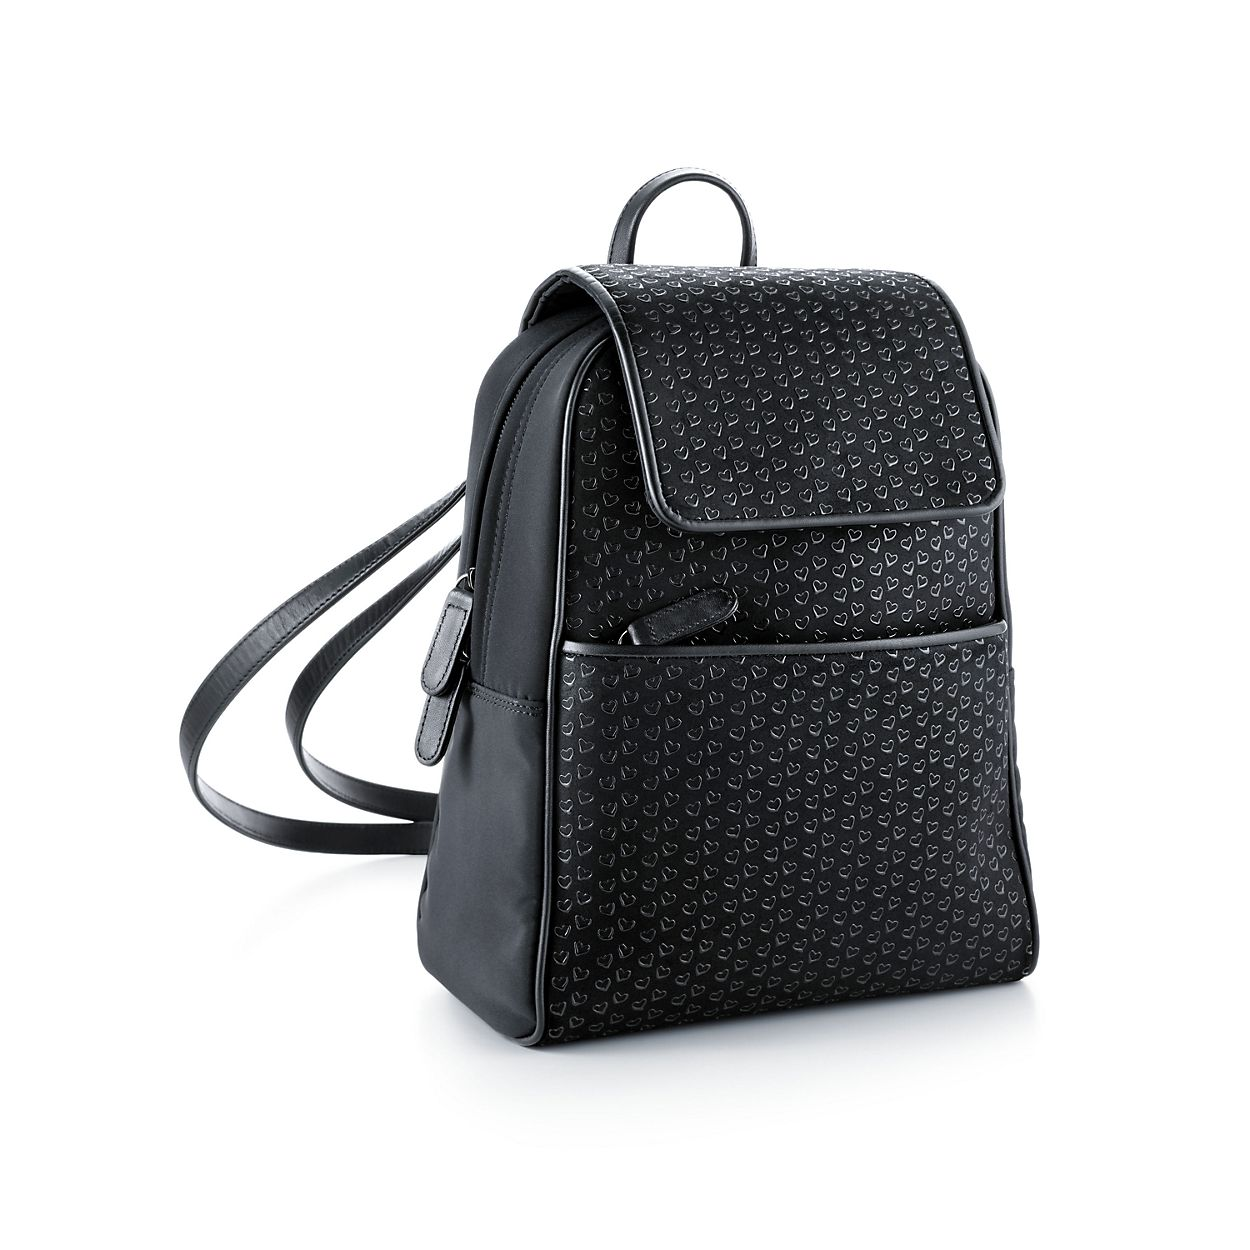 87ed992a90bb Elsa Peretti® backpack in black leather with lacquered Open Hearts ...